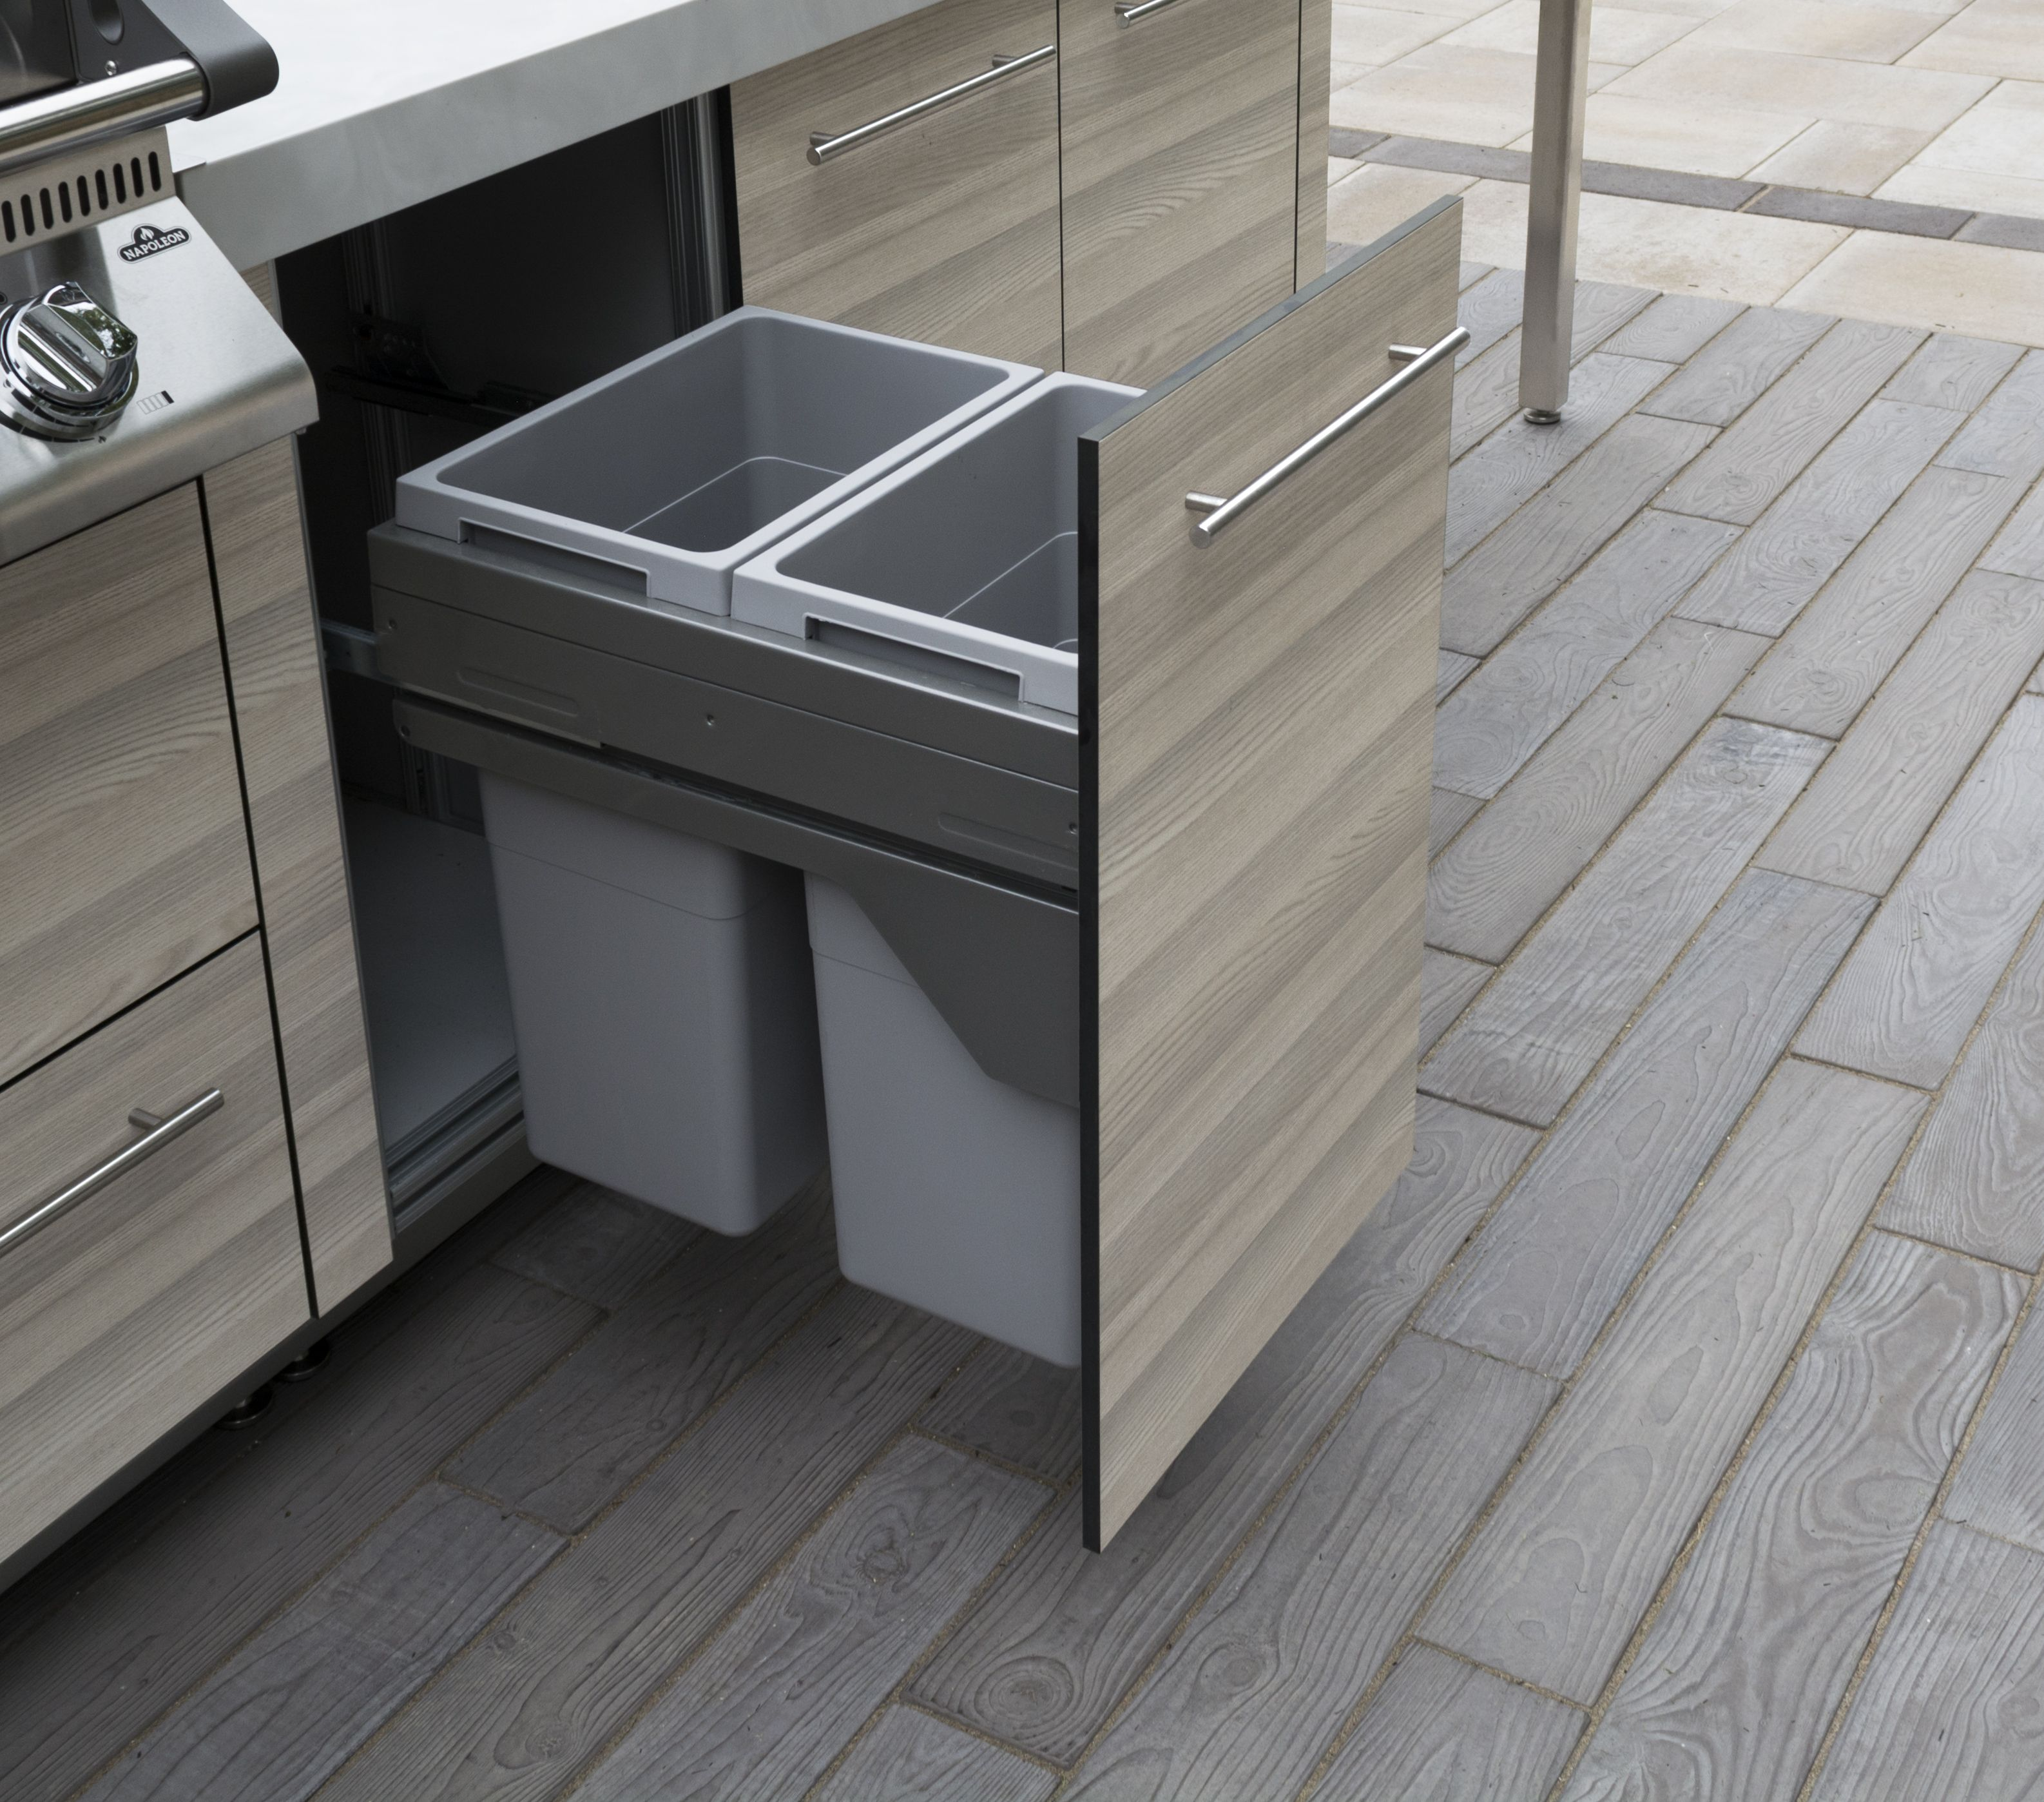 Pull Out Washable Waste Recycling Drawer Outdoor Kitchen Cabinetry Built In Pantry Prep Kitchen Outdoor Kitchen